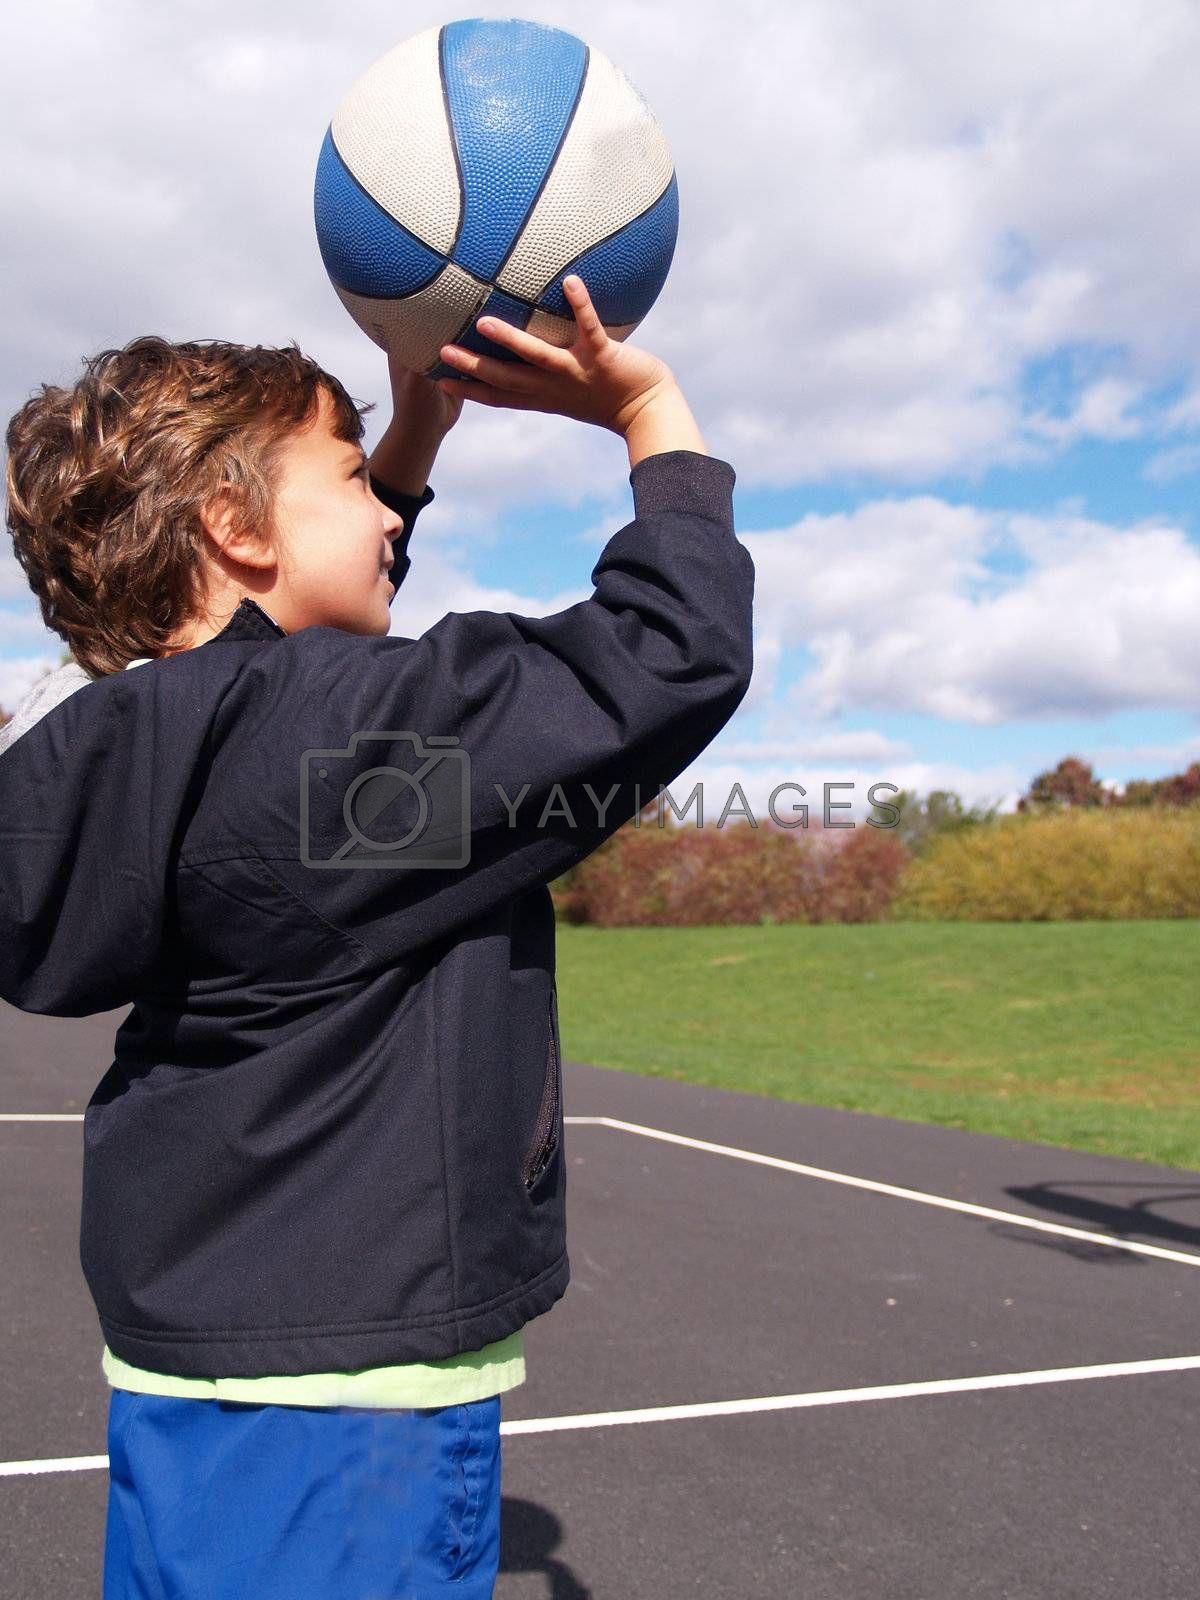 young boy attempting to shoot a basket